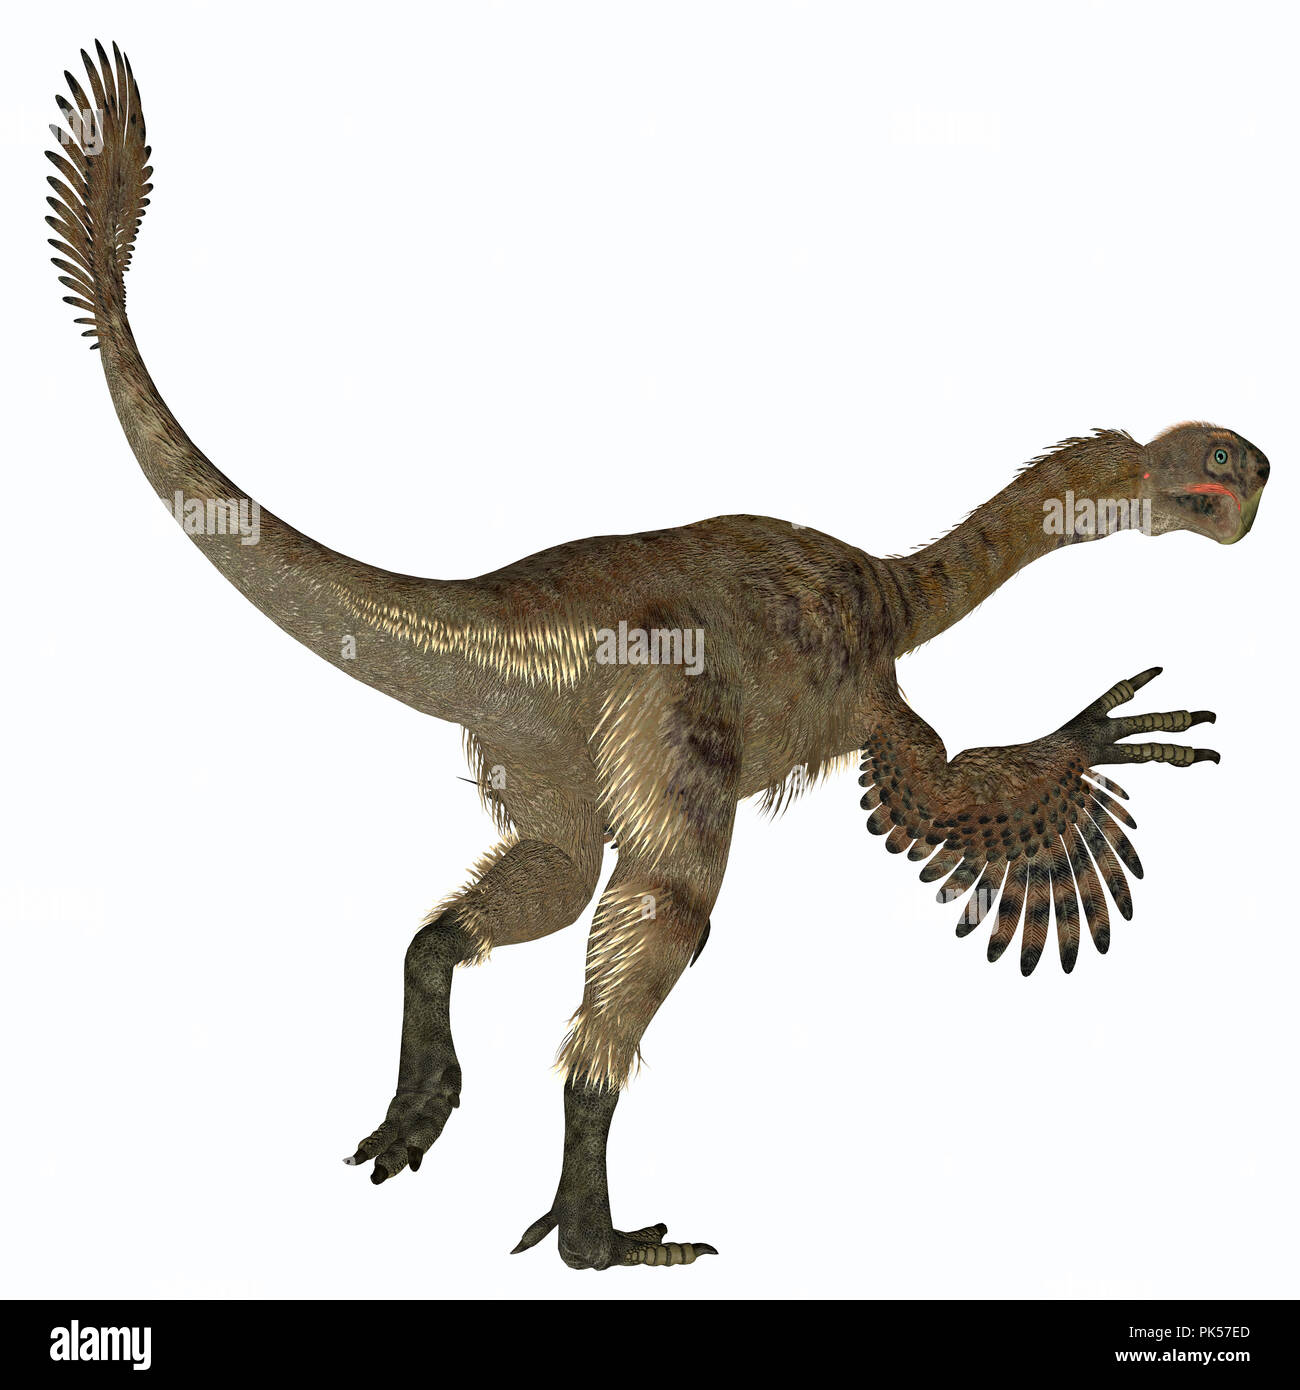 Citipati Female Dinosaur Tail - Citipati was a carnivorous Velociraptor dinosaur that lived in Mongolia during the Cretaceous Period. - Stock Image